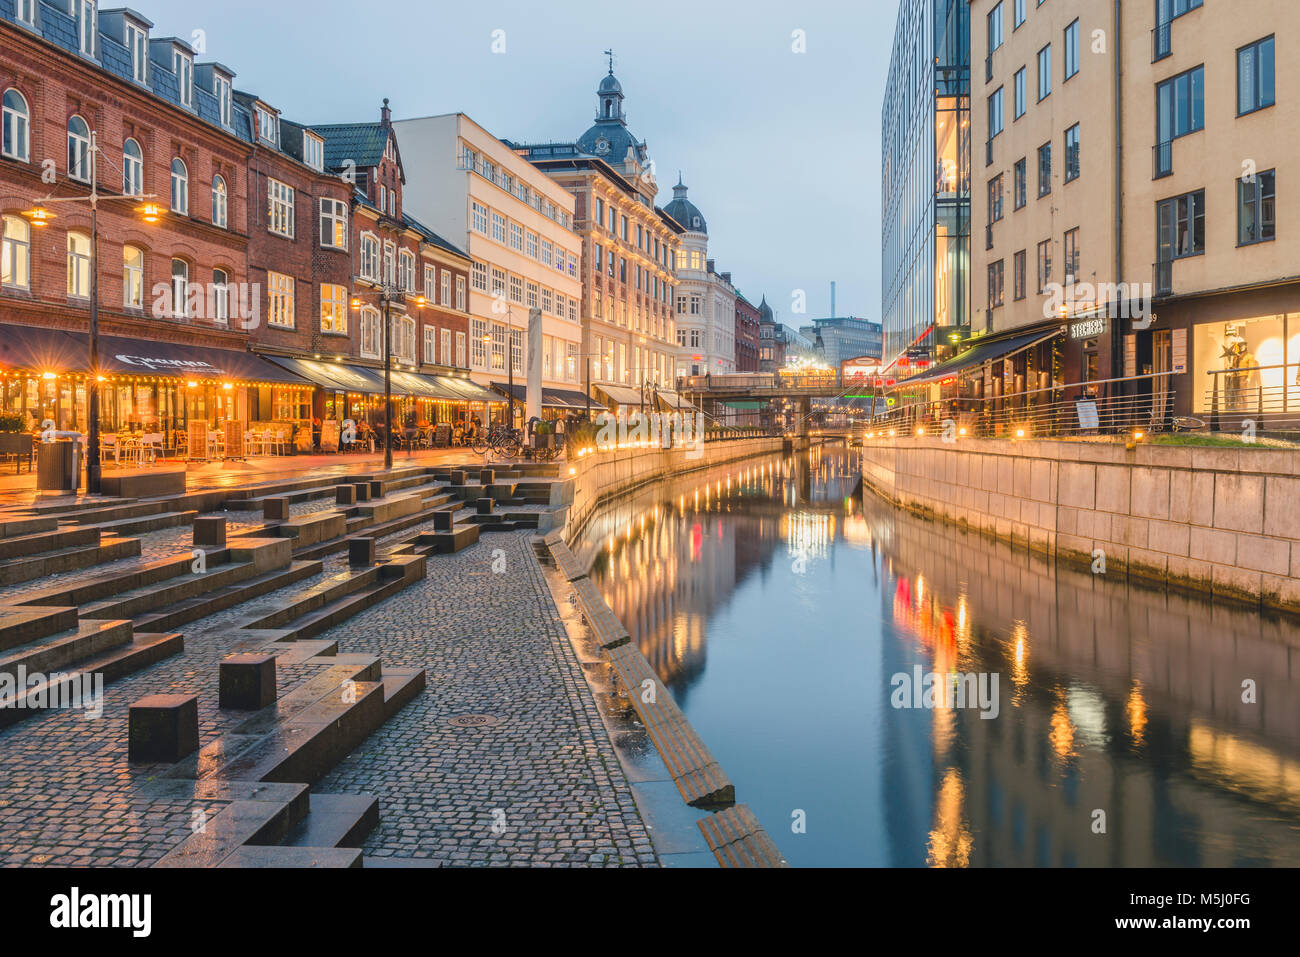 Denmark, Aarhus, view to lighted city with Aarhus River - Stock Image